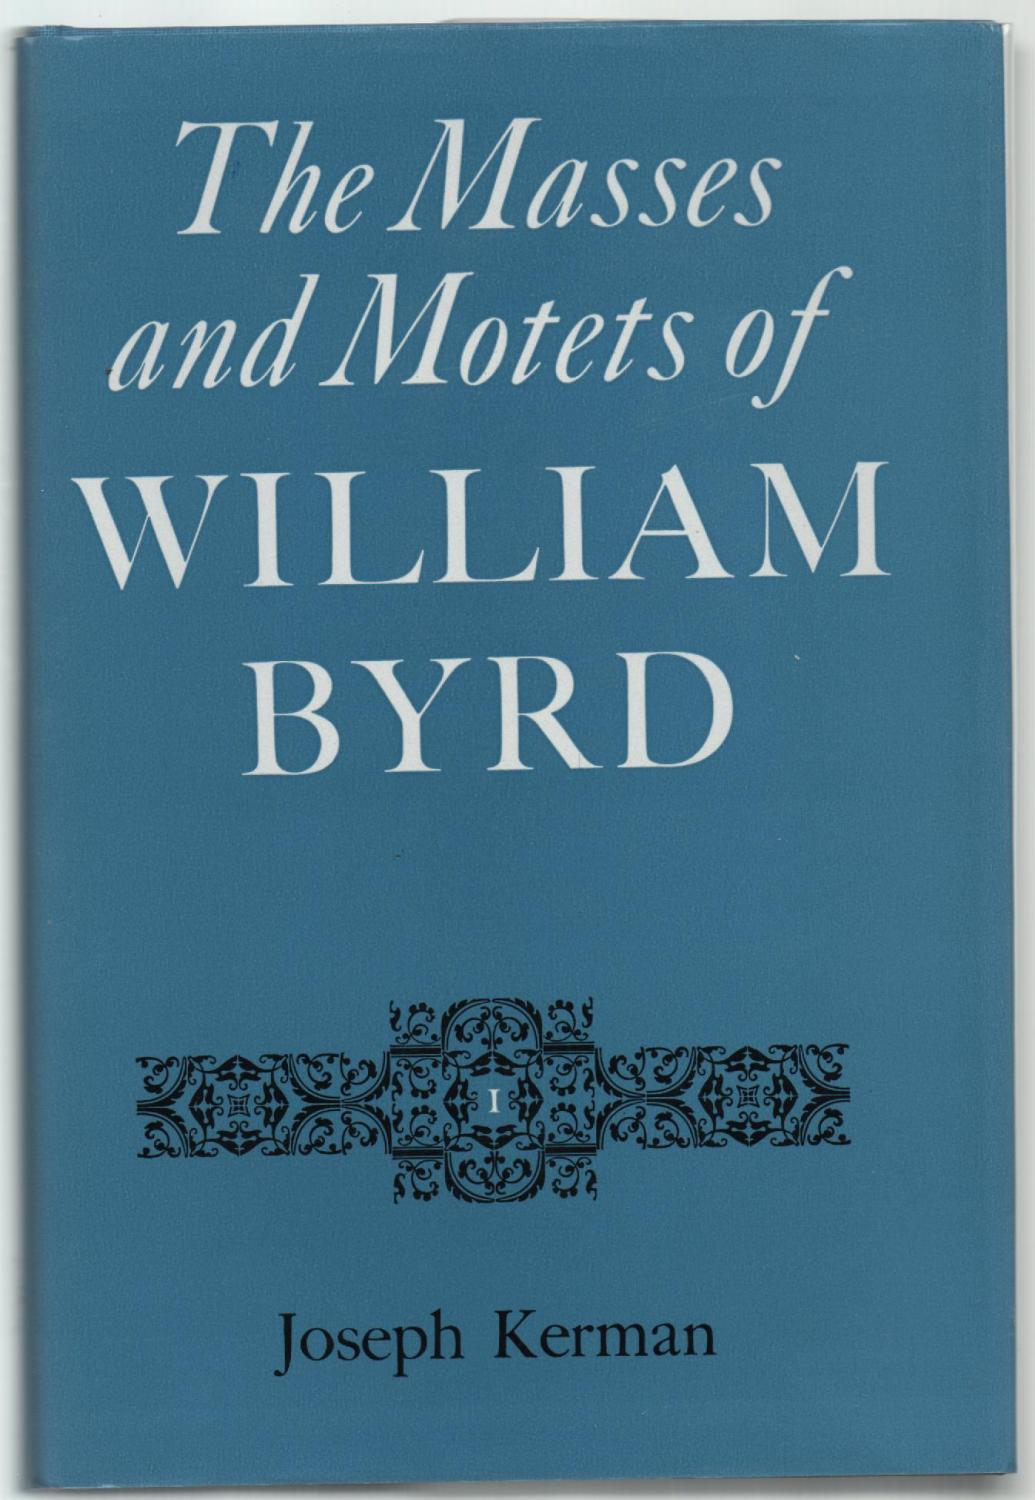 assessment on william byrd